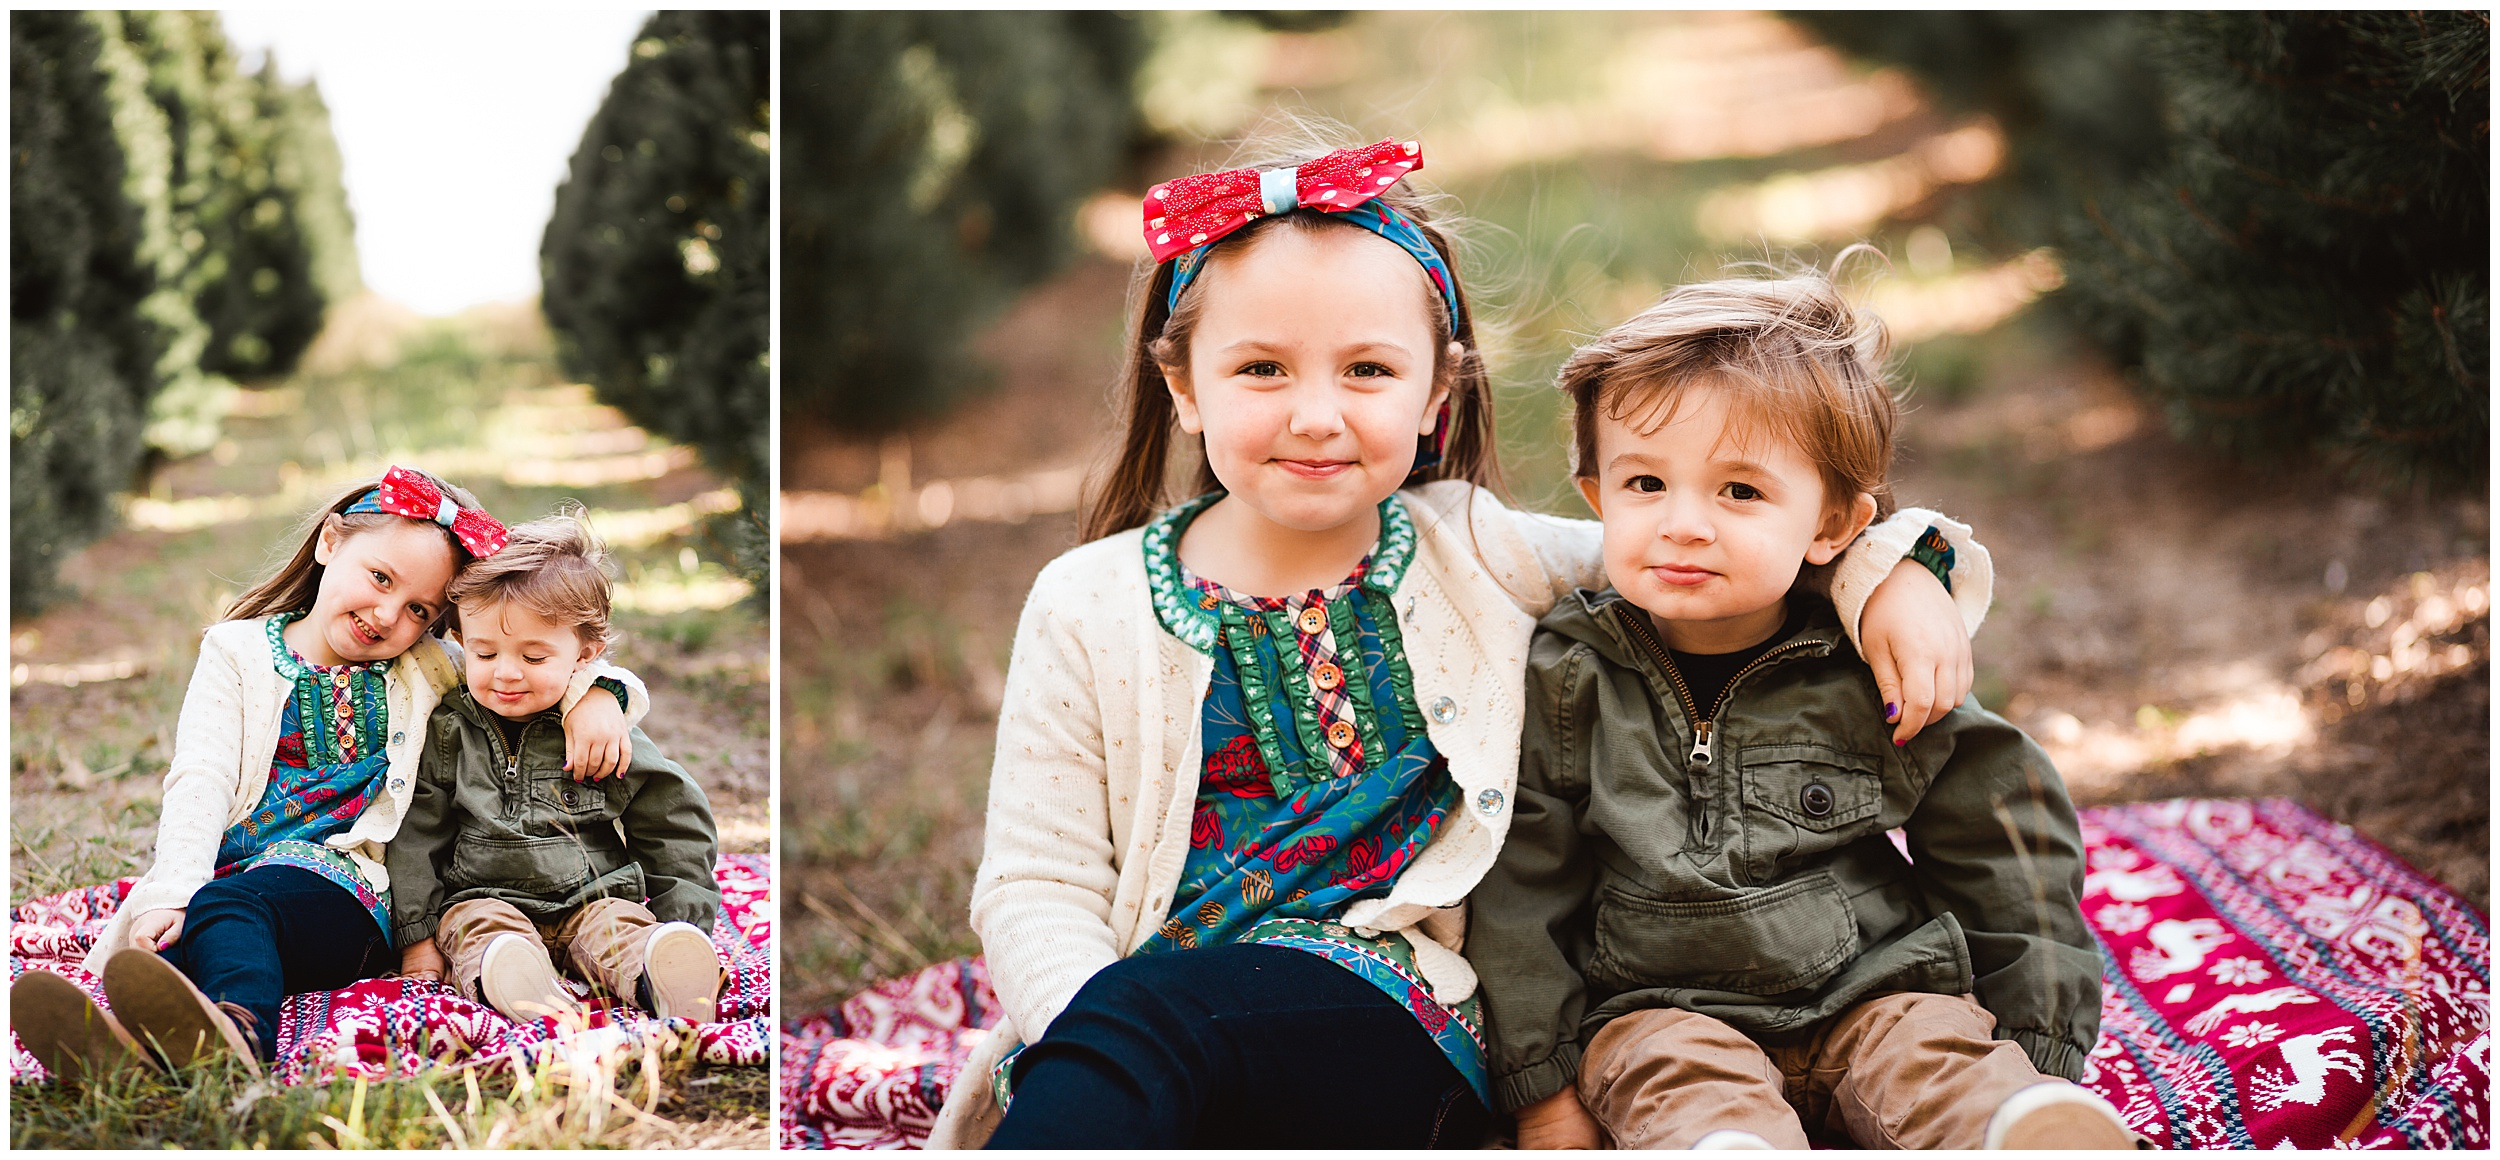 Indianapolis Family Photographer_Kelli White Photography_IG_0223.jpg